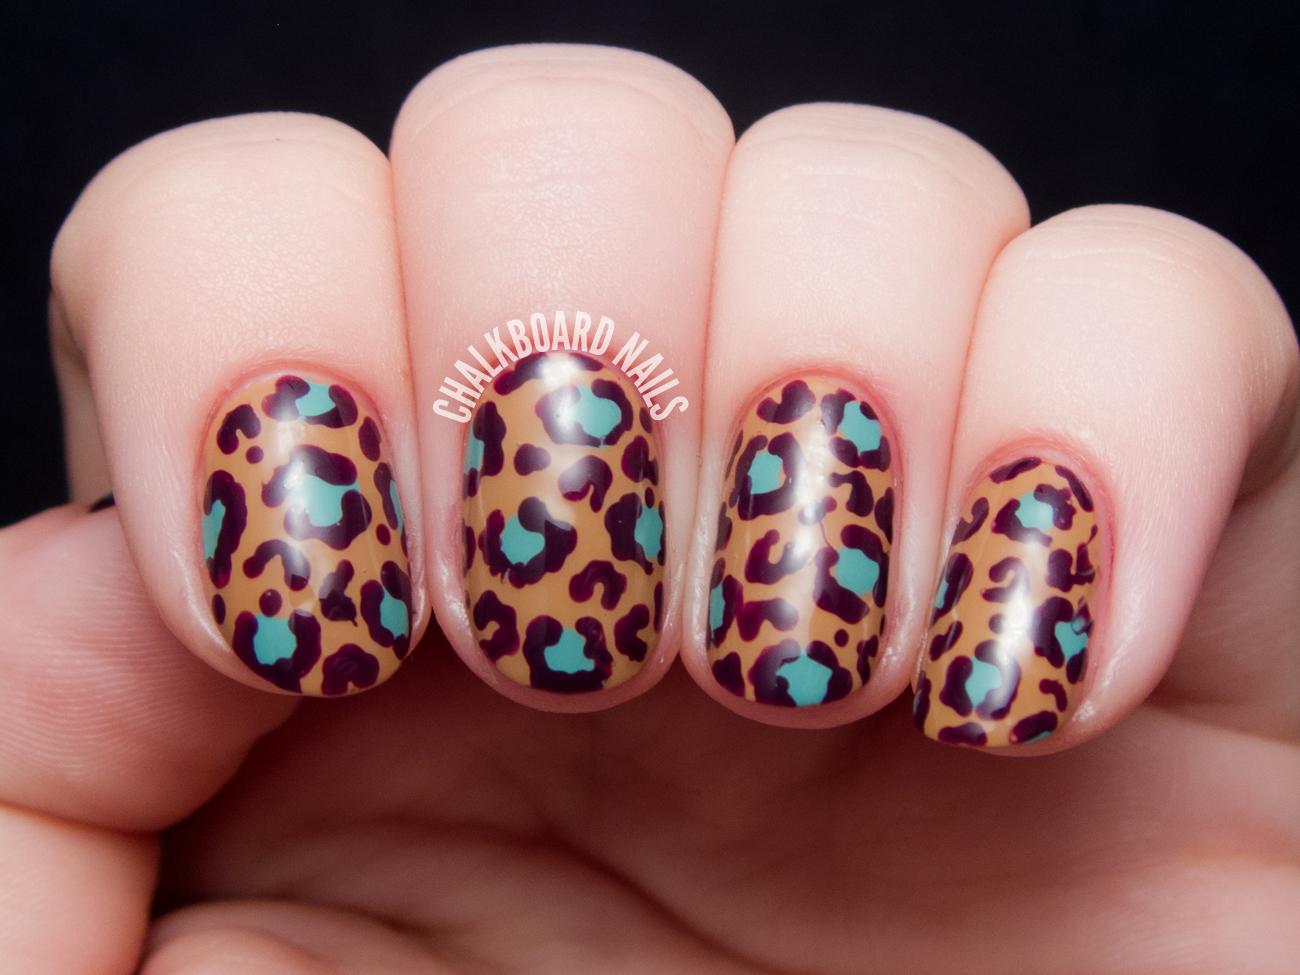 OPI Nordic Collection Leopard Print Nail Art | Chalkboard Nails ...